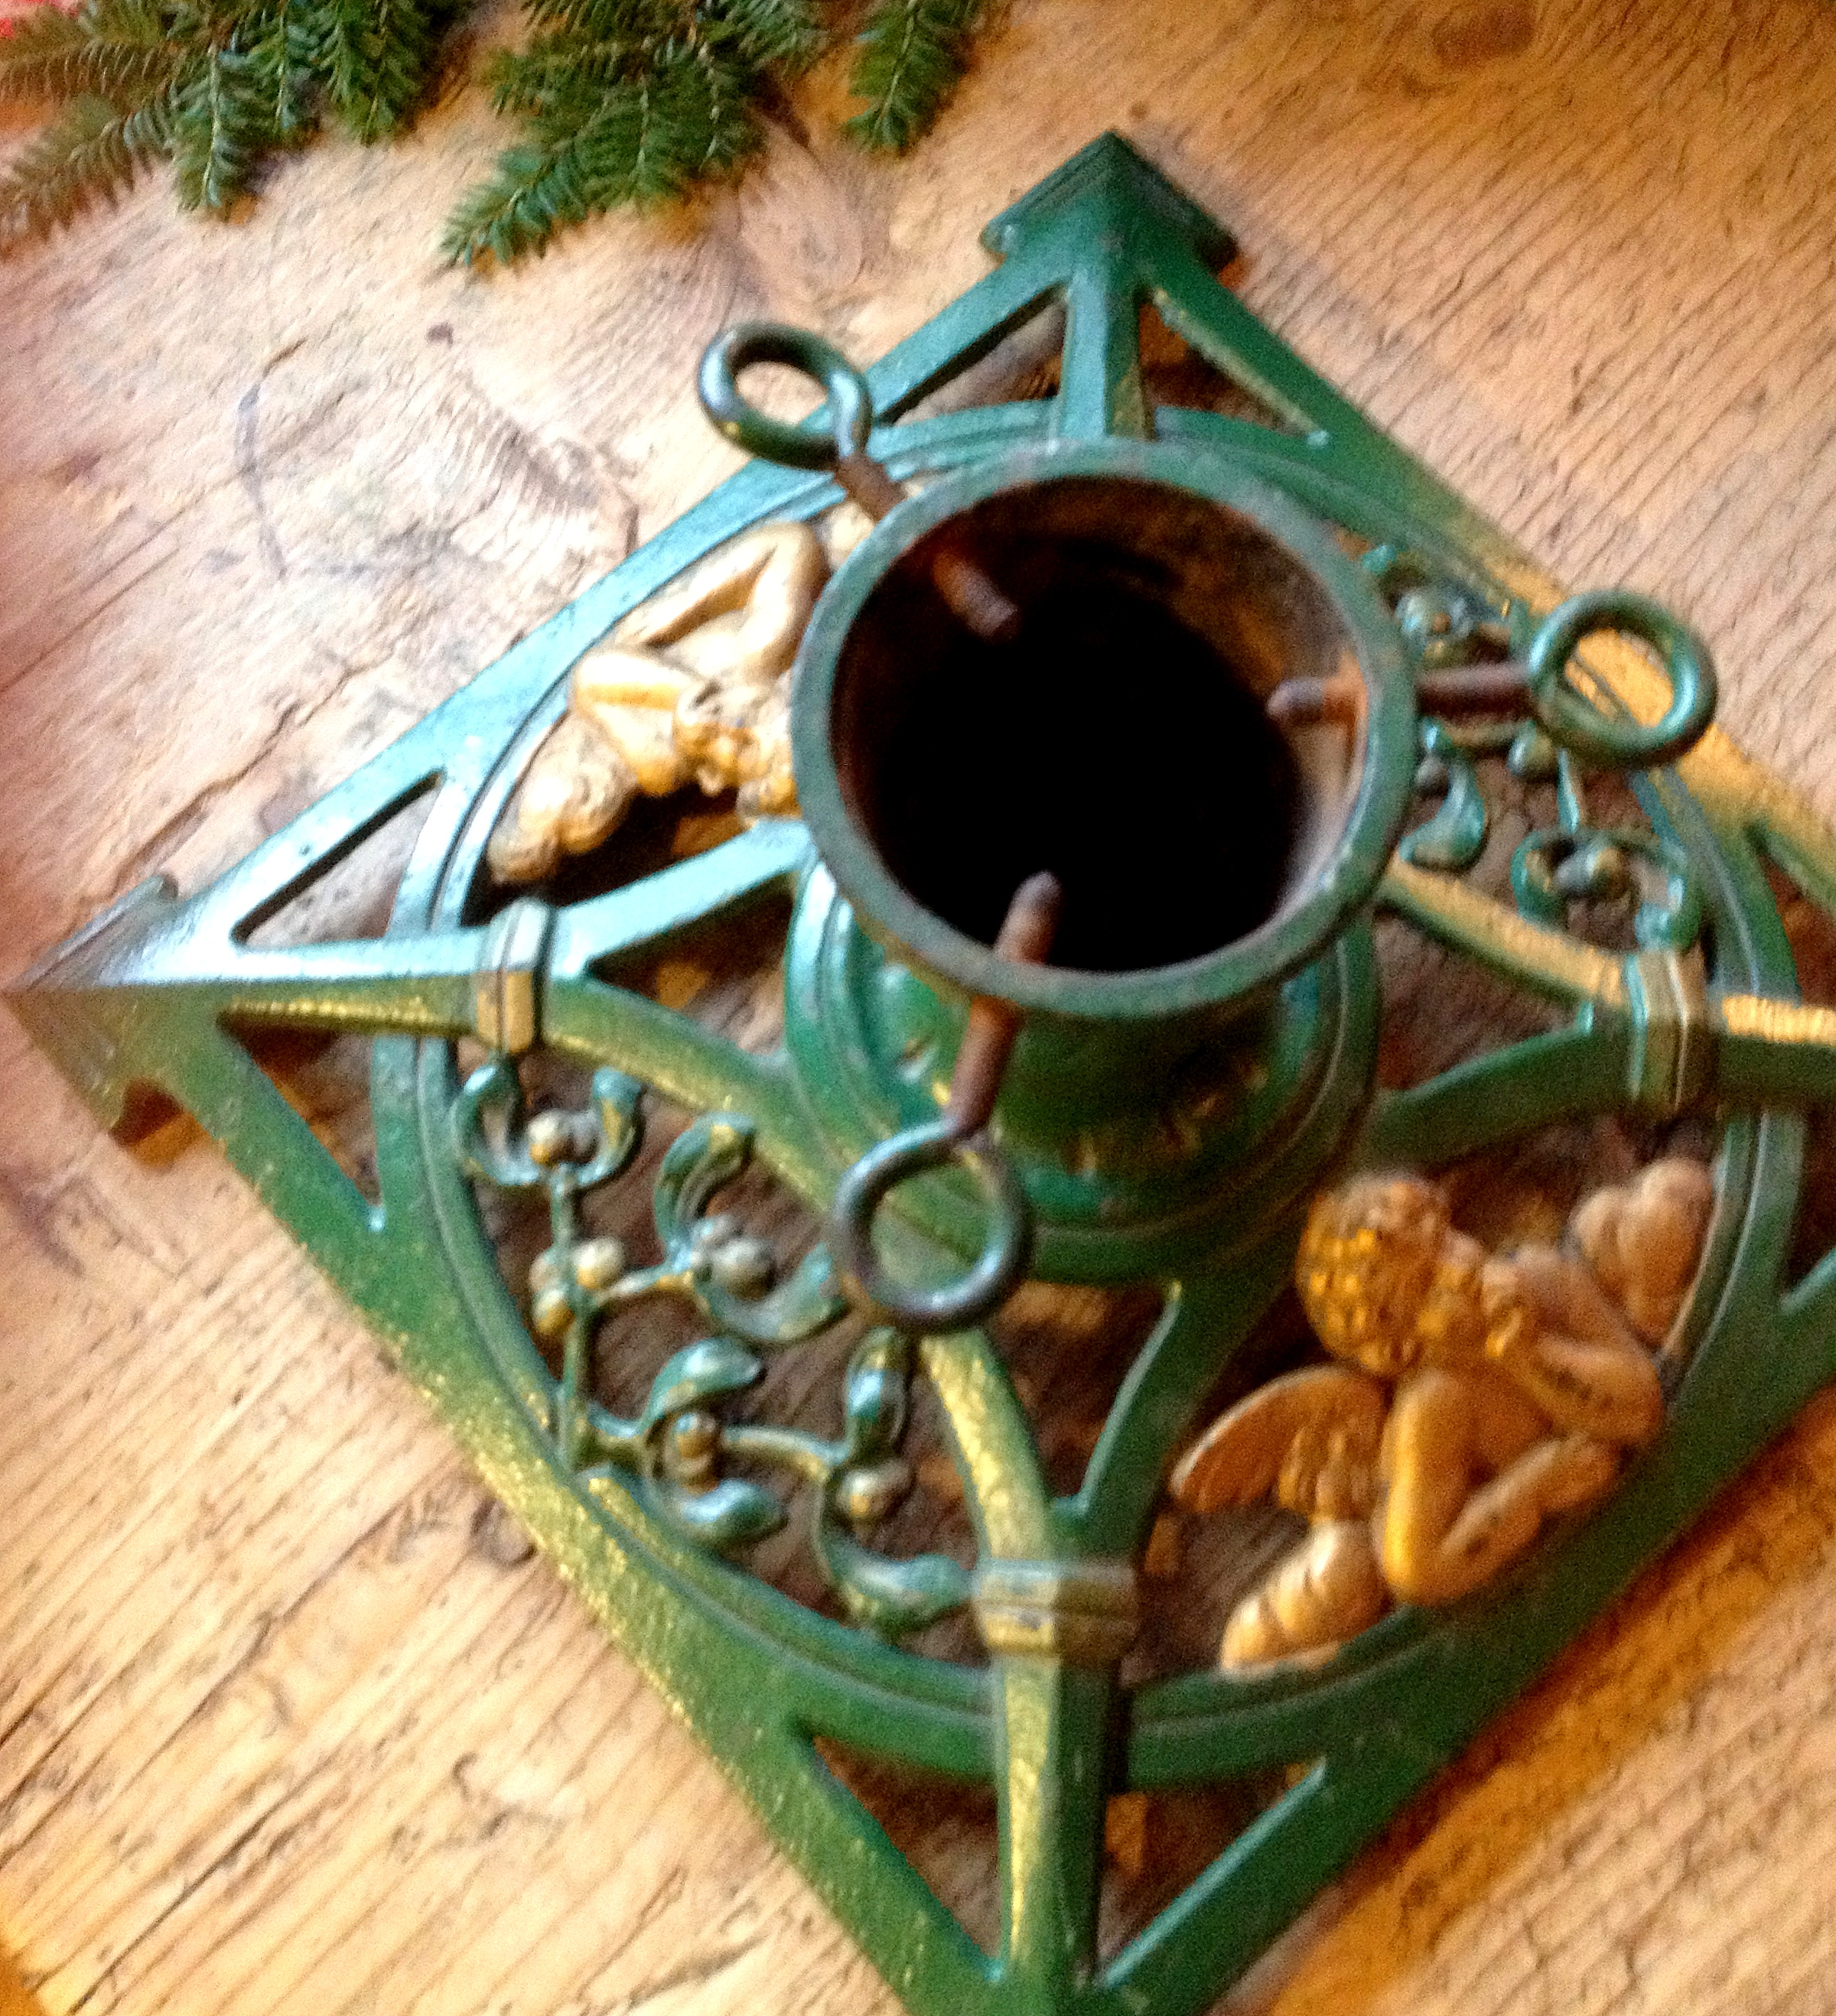 Antique Christmas Tree Stand Decorations : Vintage christmas tree stand with cherub gifts